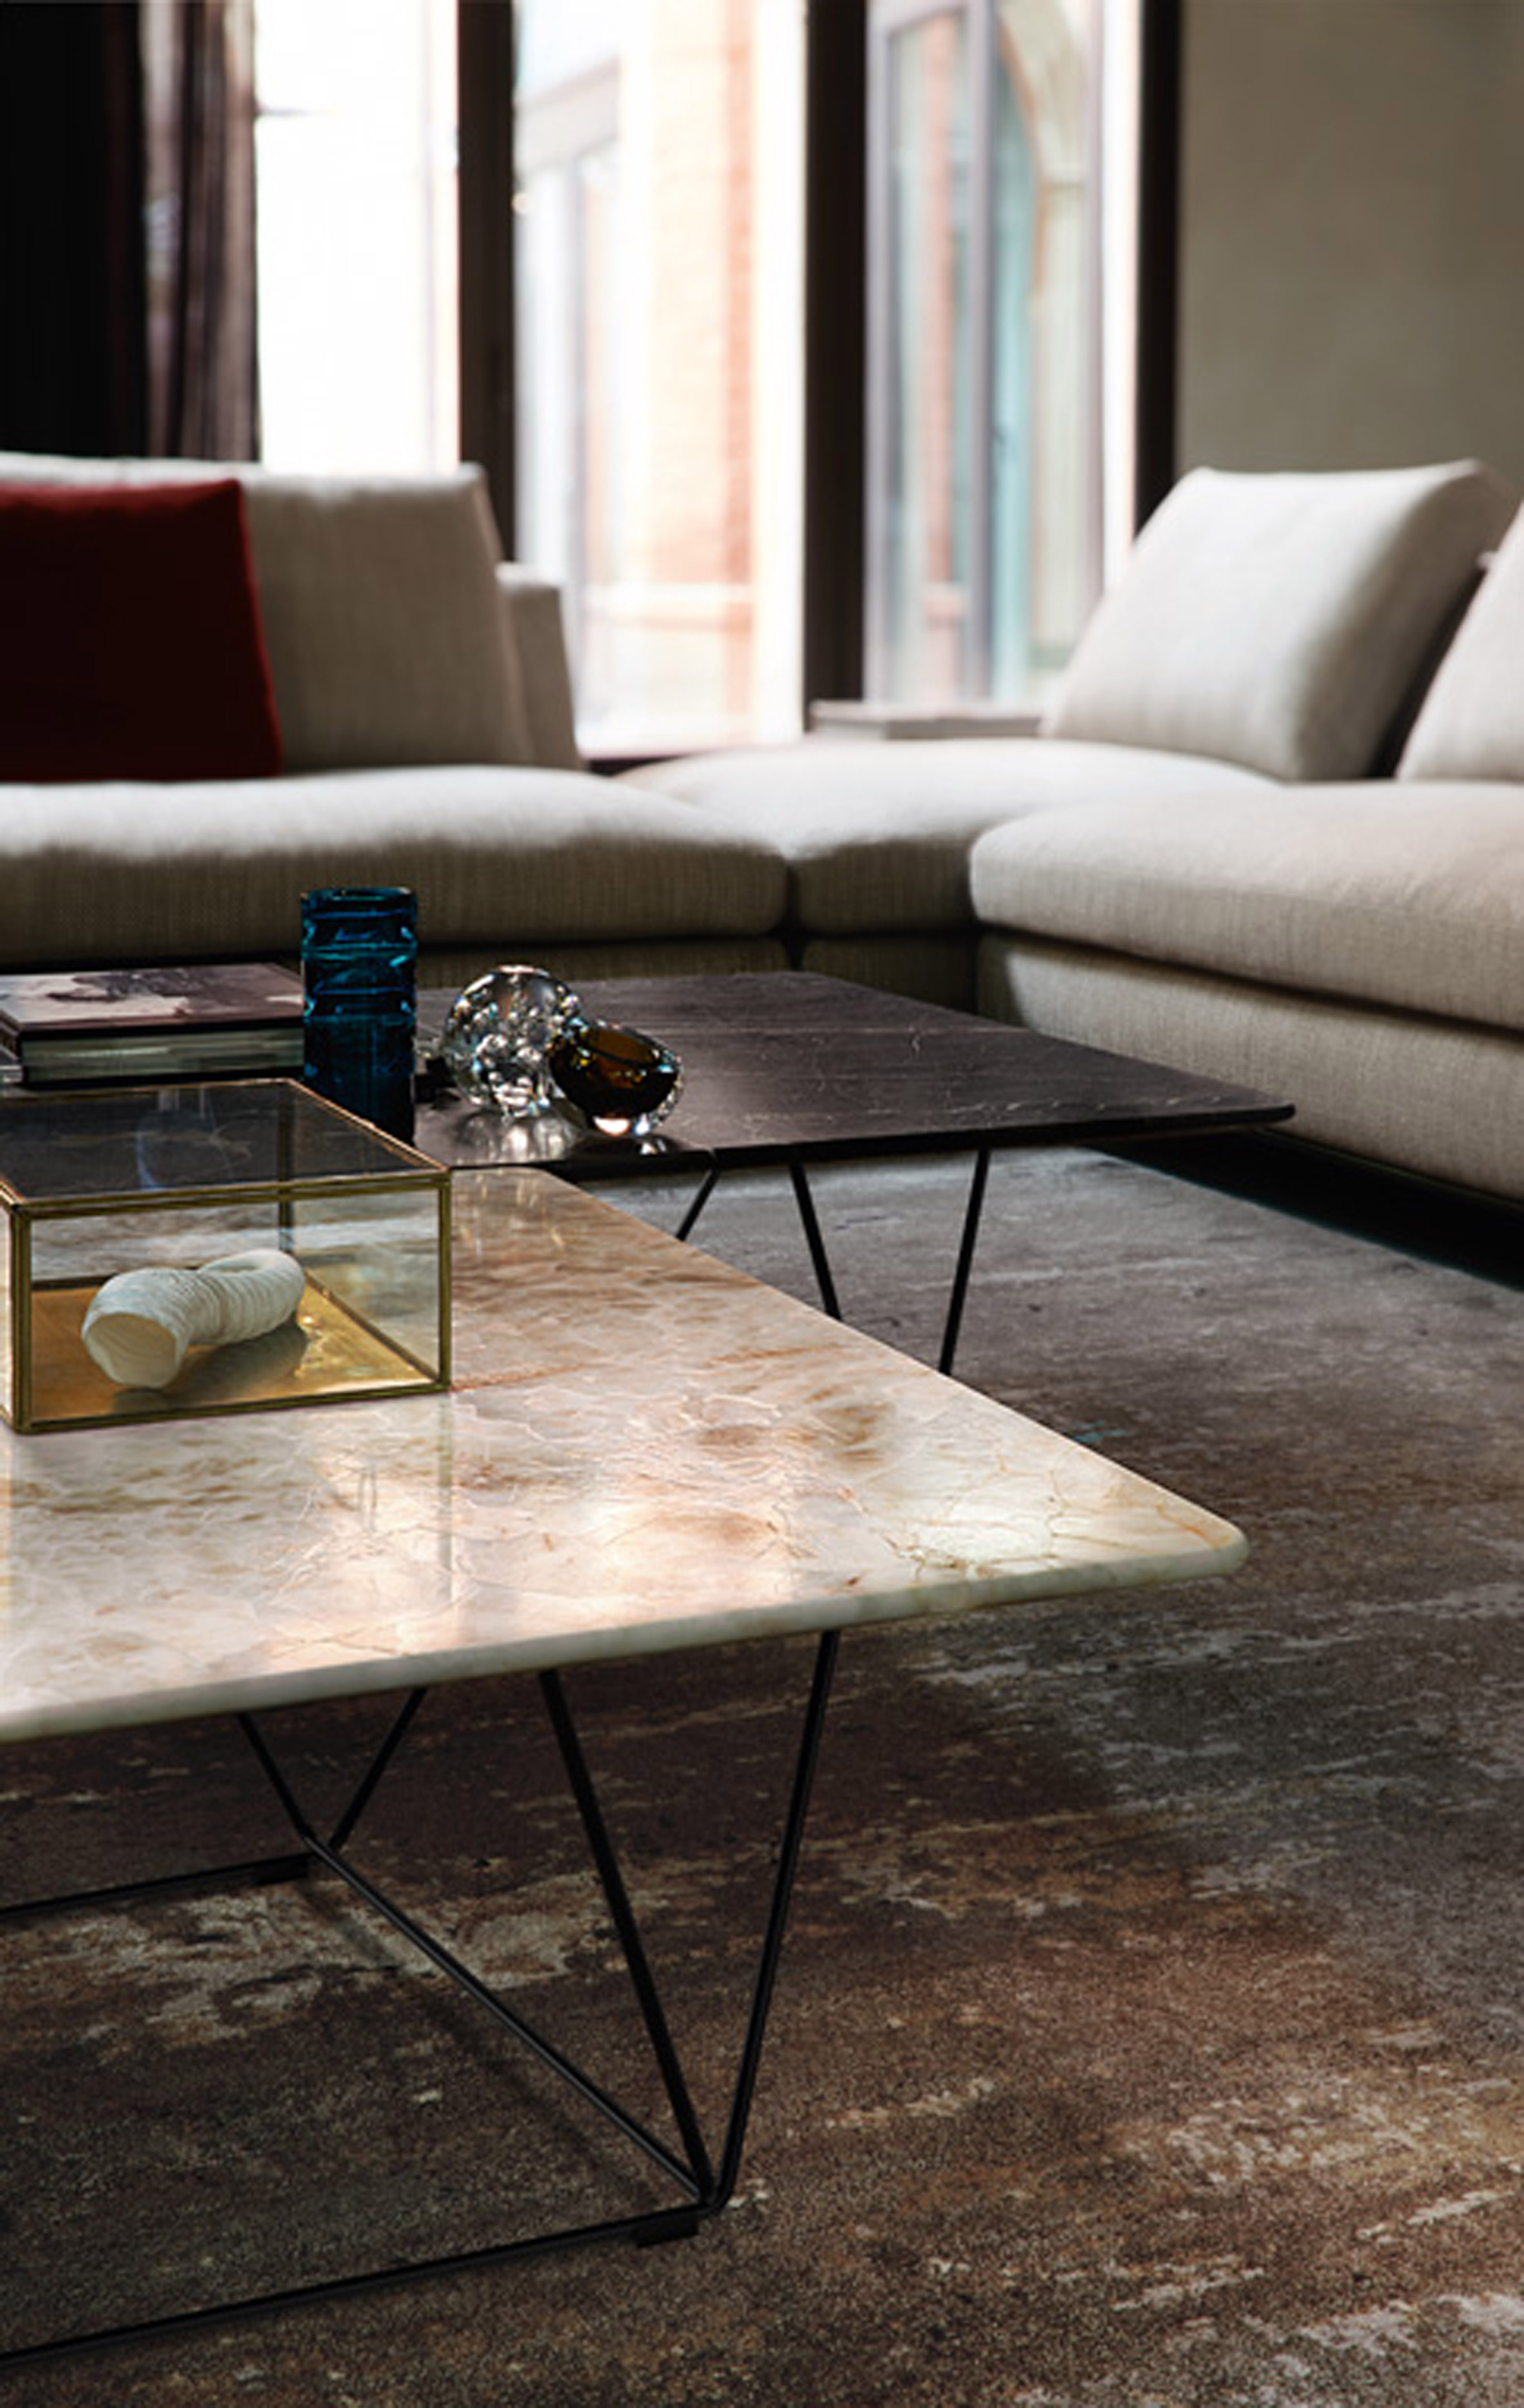 Foyer Table Singapore : Novices walter knoll to present sofa with integrated